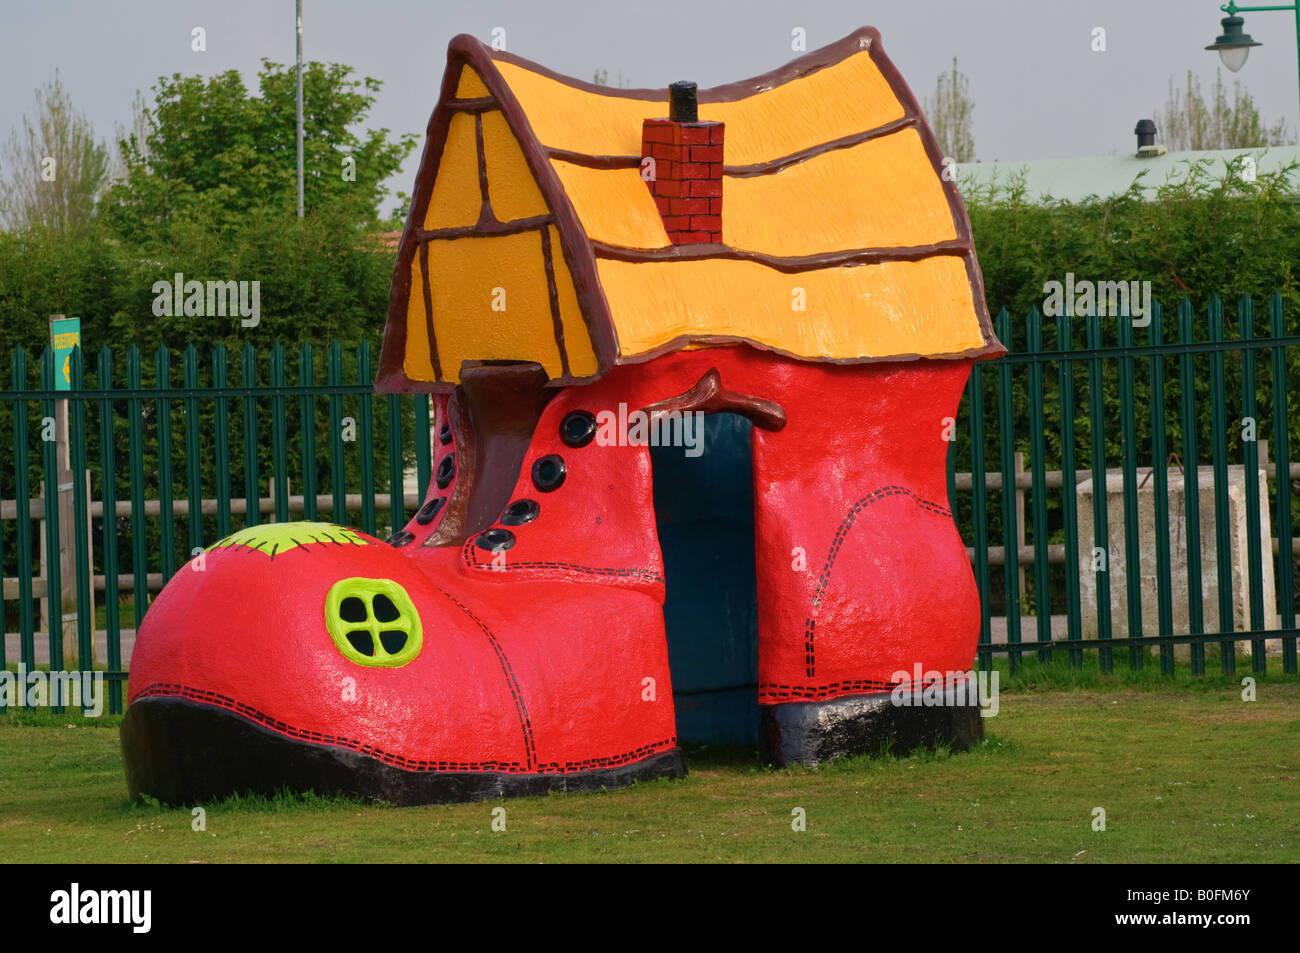 Large Red Shoe / Boot Child's Play House Stock Photo, Royalty Free ...